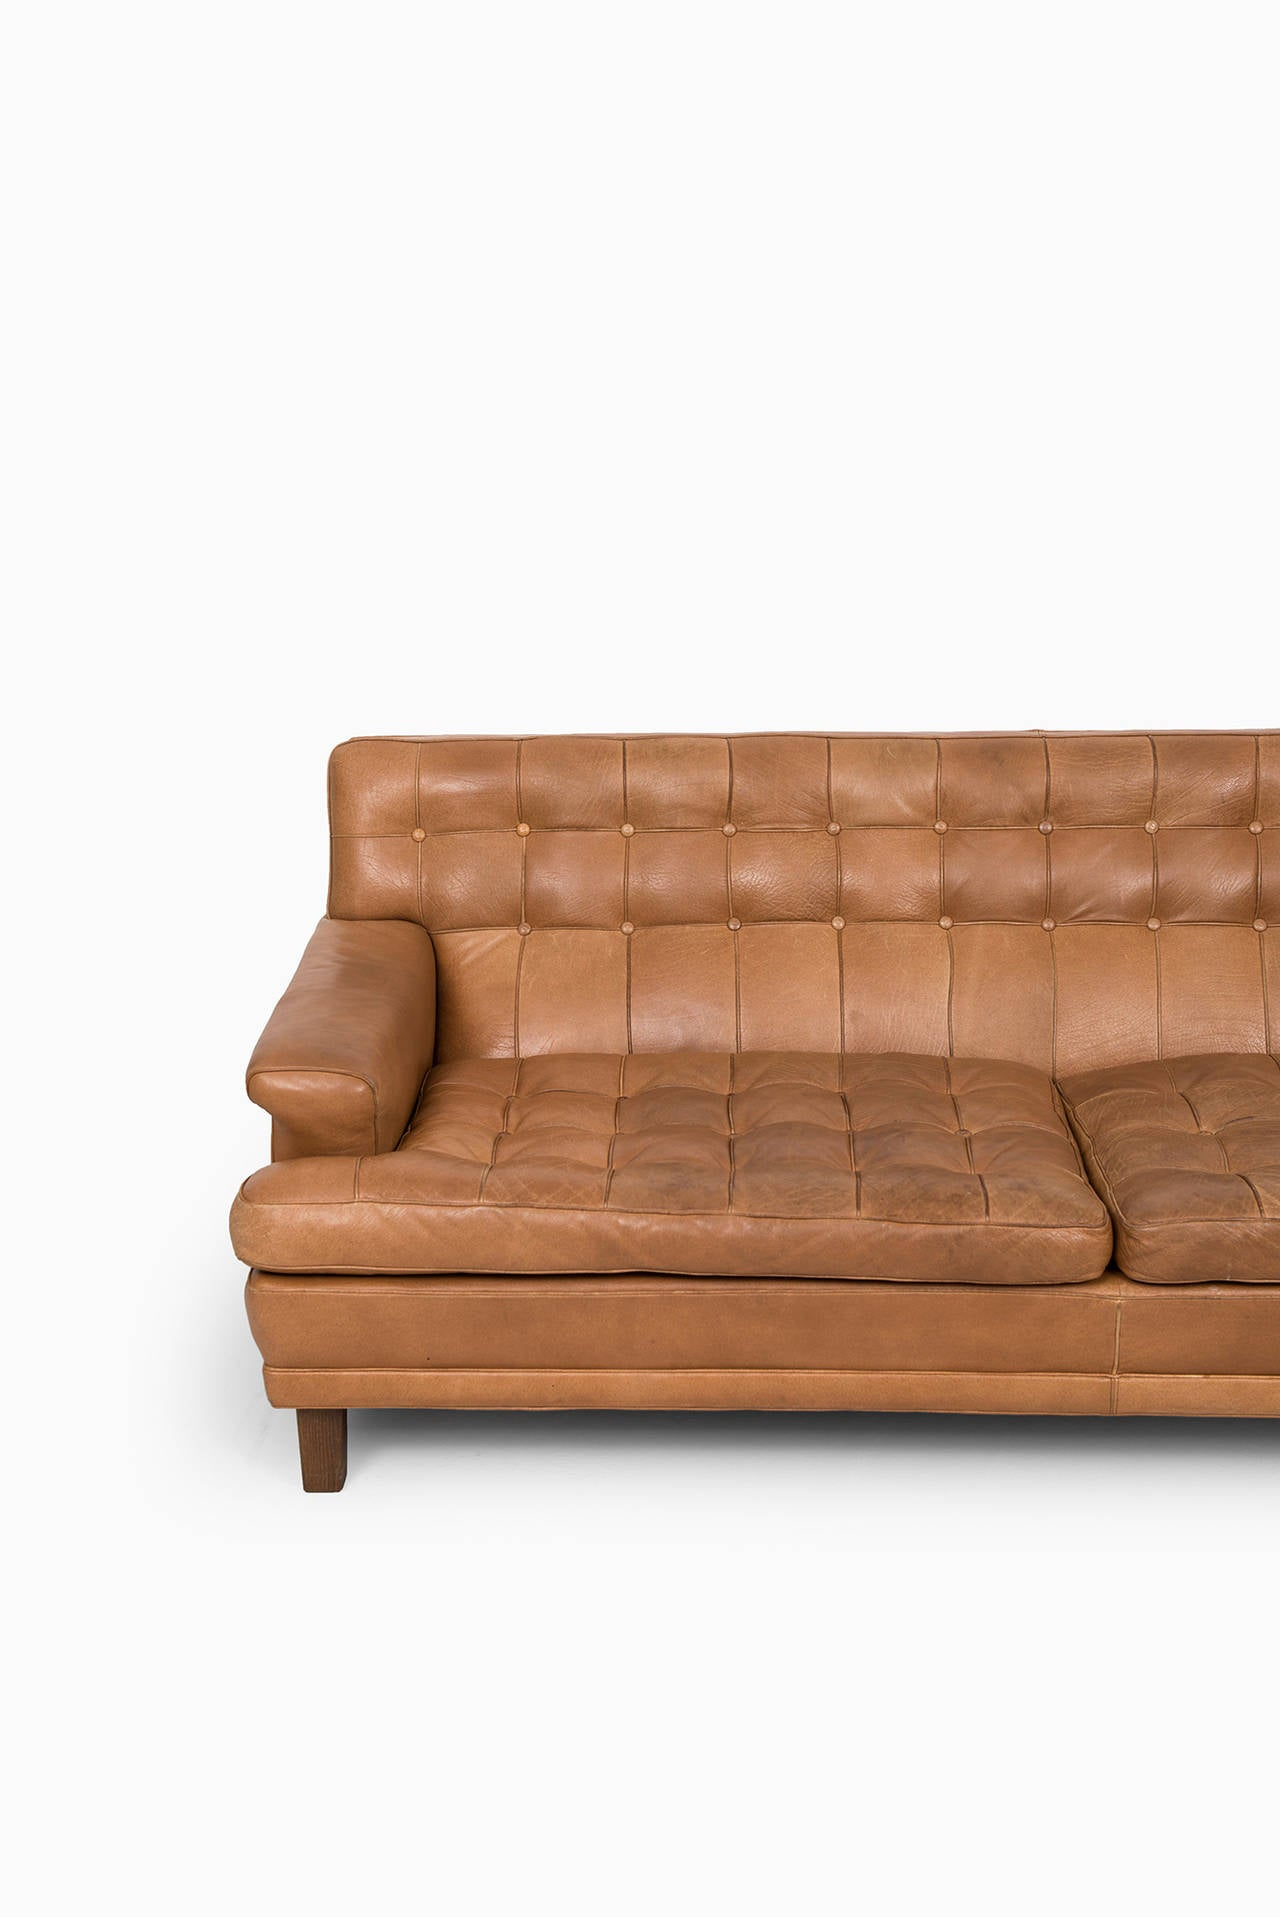 arne norell merkur sofa in cognac brown leather by norell ab in sweden at 1stdibs. Black Bedroom Furniture Sets. Home Design Ideas